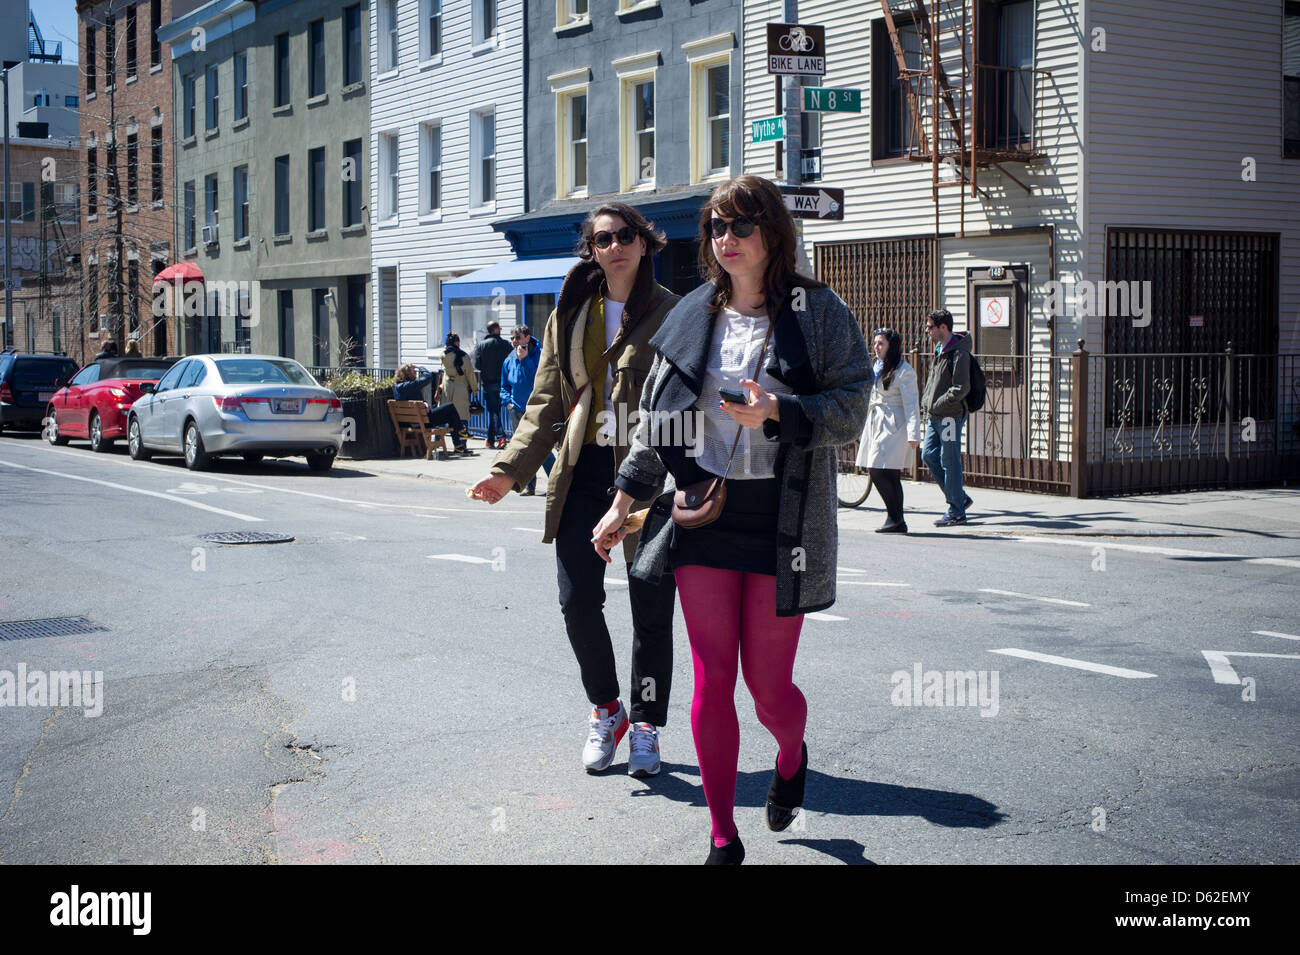 Street activity in trendy hipster Williamsburg, Brooklyn in